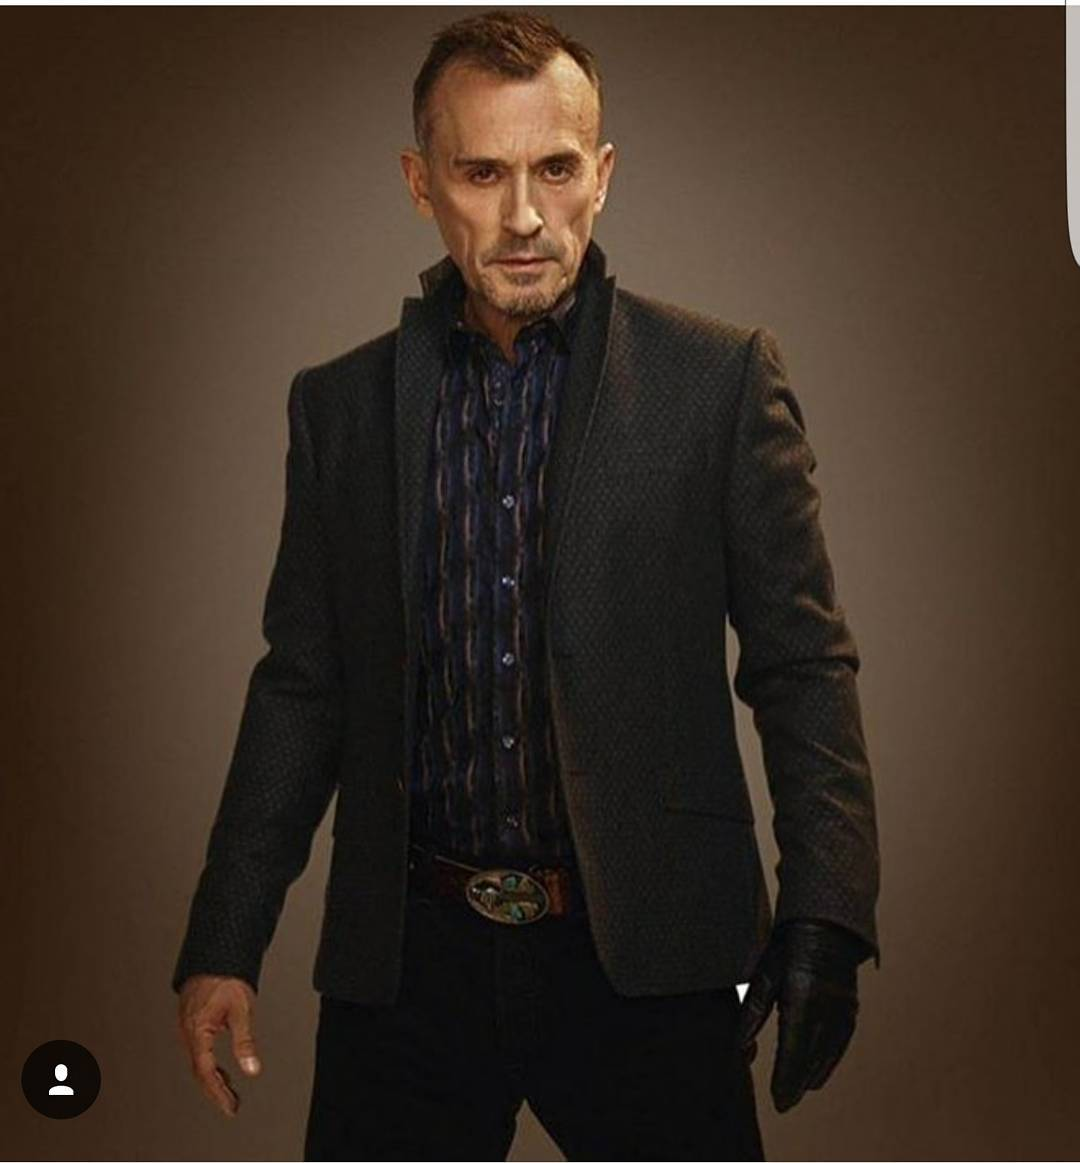 Robert Knepper Instagram username